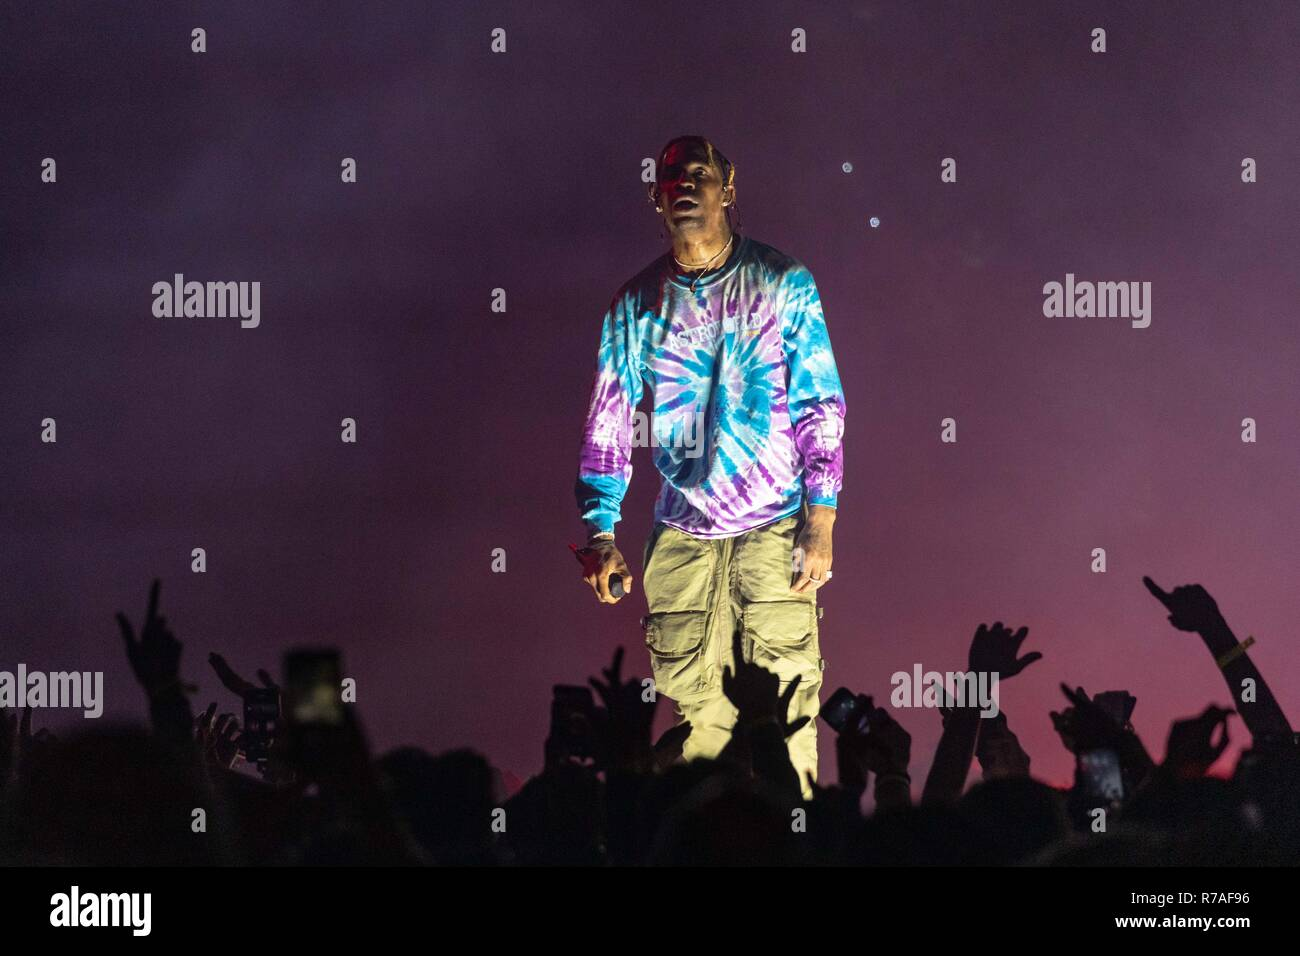 Astroworld Stock Photos & Astroworld Stock Images - Alamy